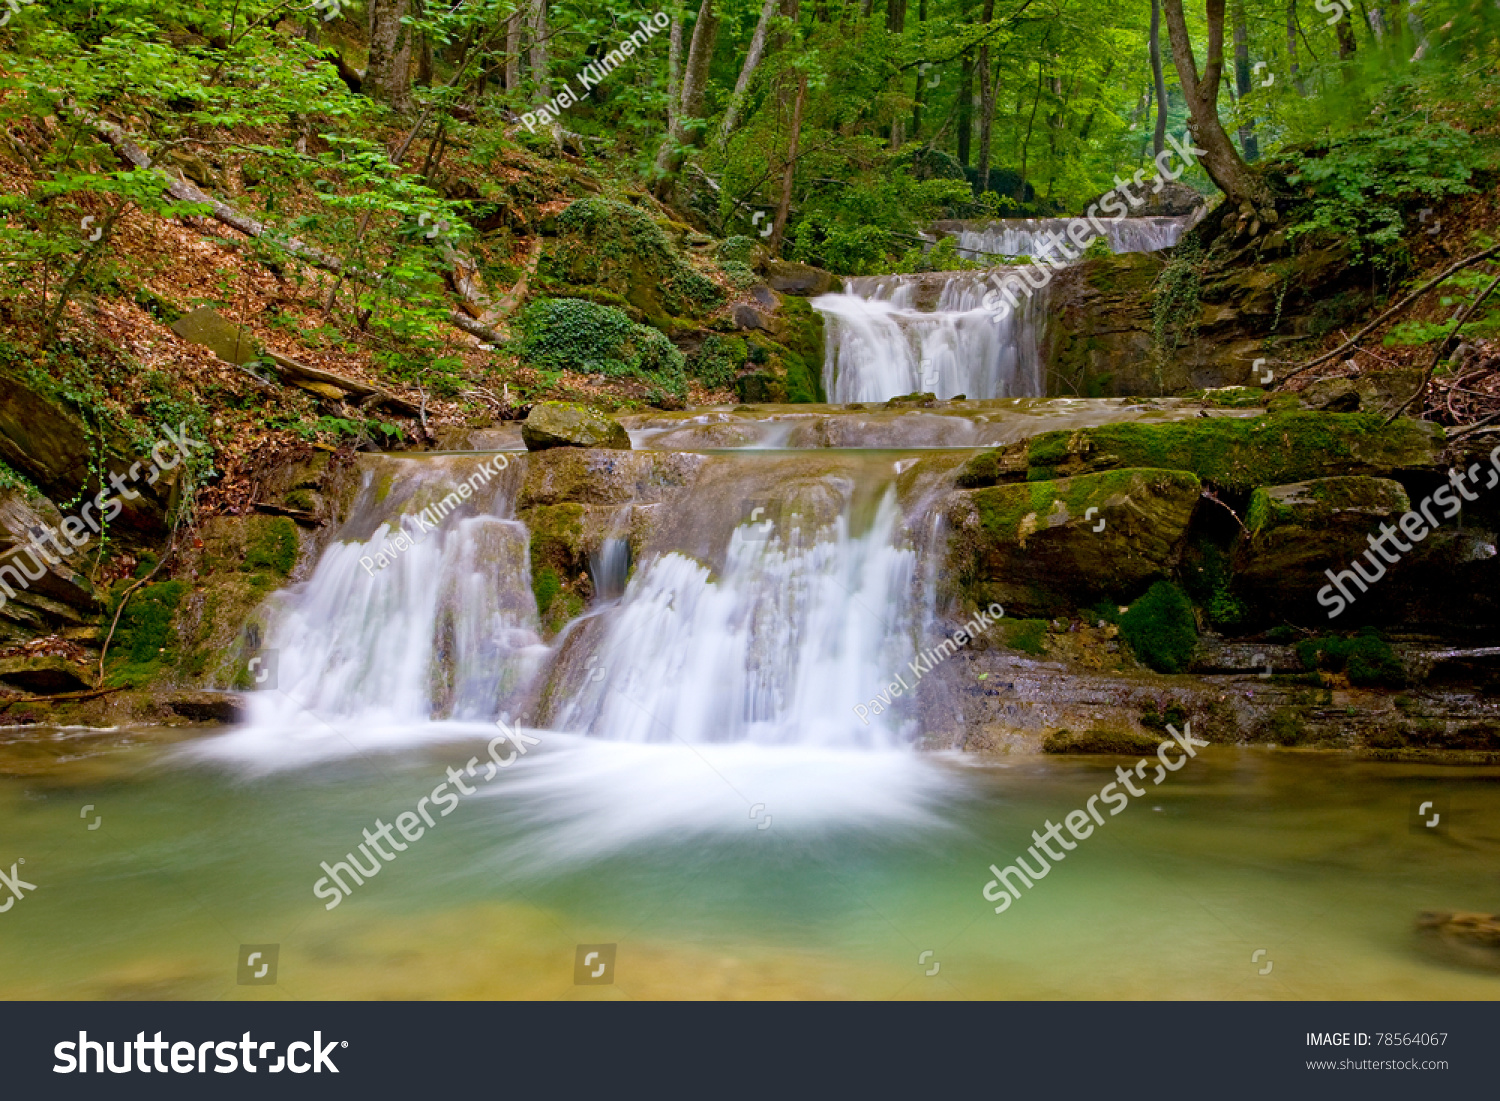 Nice Landscape With Waterfall In Green Forest Stock Photo